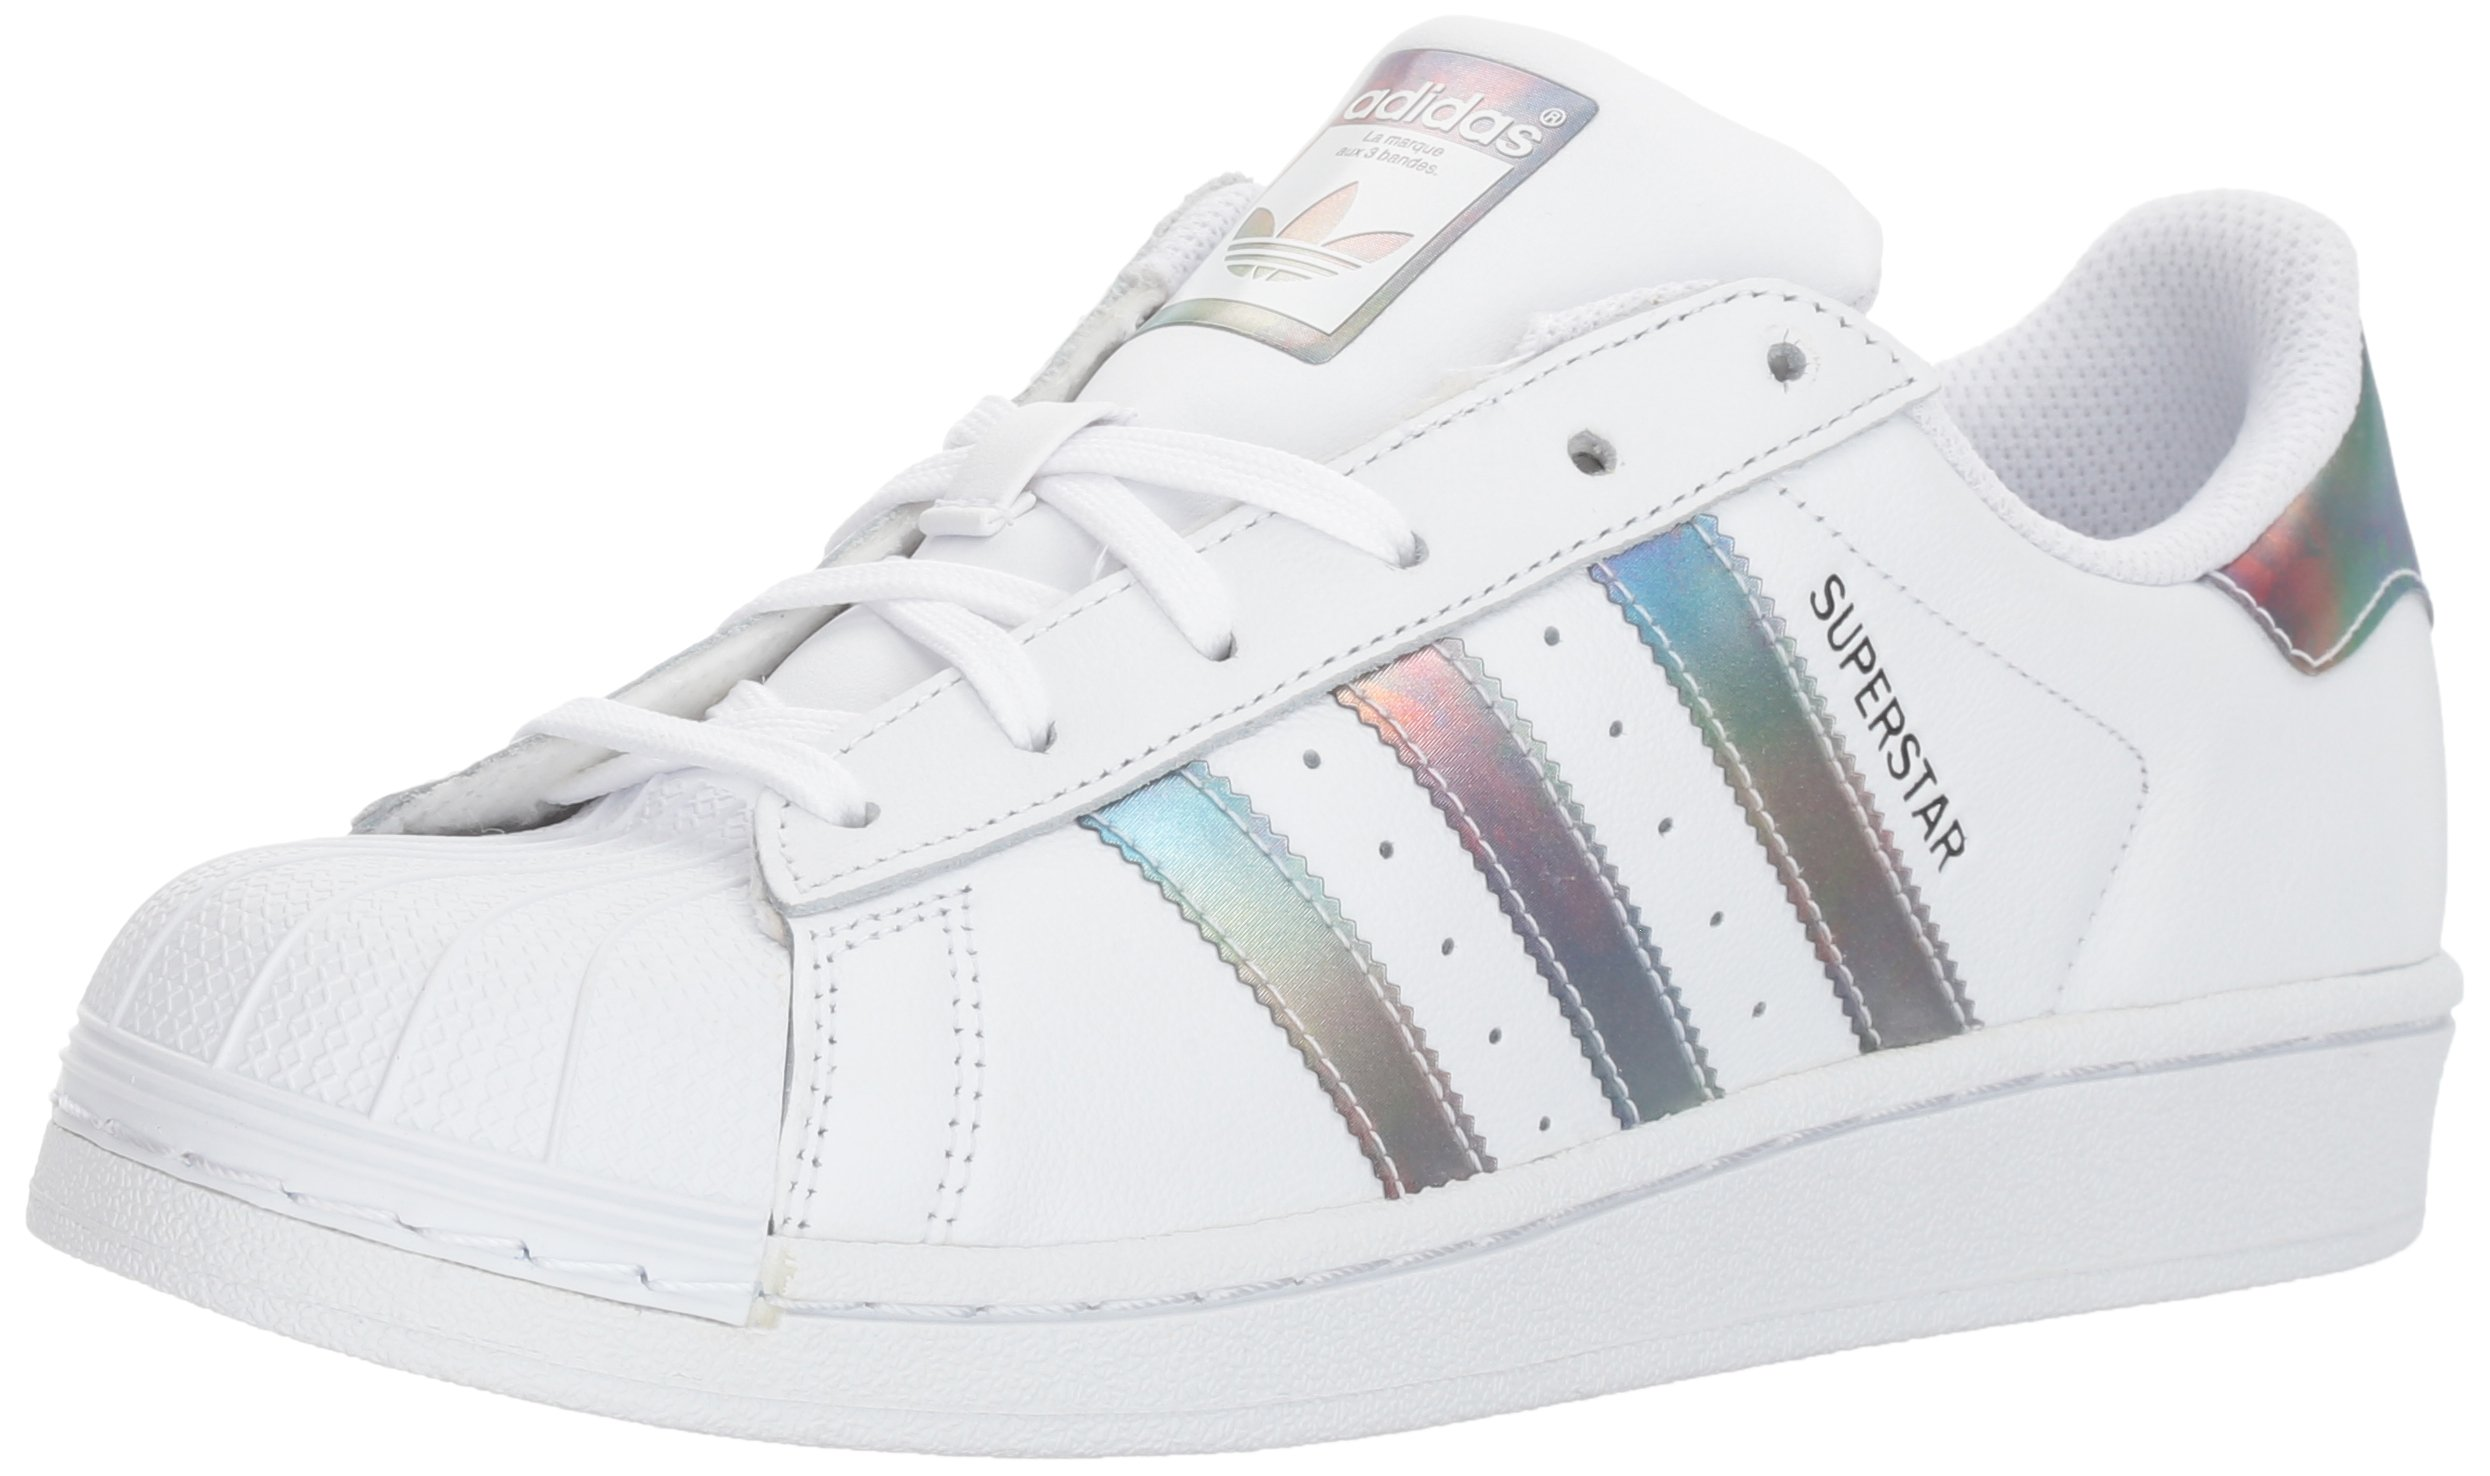 adidas Originals Unisex-Kids Superstar J Sneaker, White/White/Gold Metallic, 4 M US Big Kid by adidas